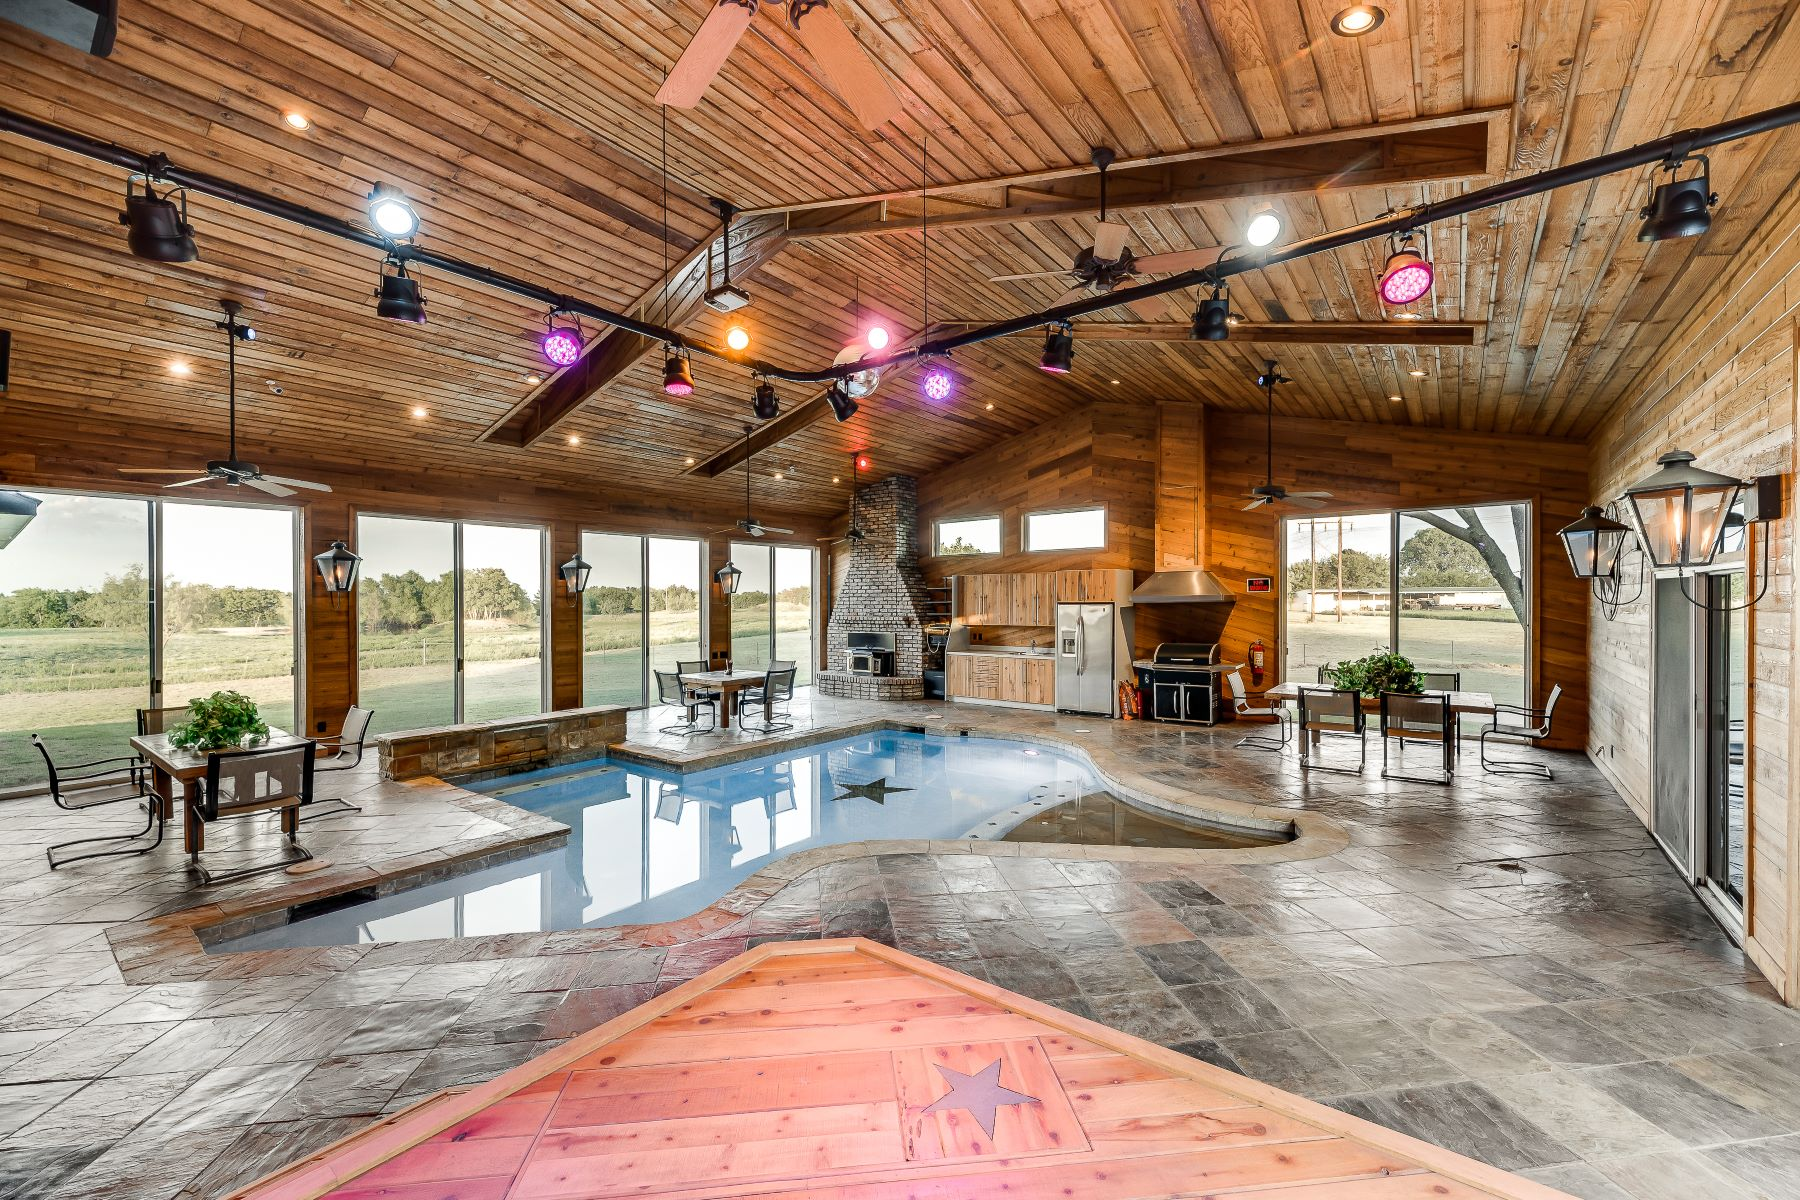 Single Family Homes for Active at Entertain in Style! 209 Sabine Creek Road 7 acres Royse City, Texas 75189 United States